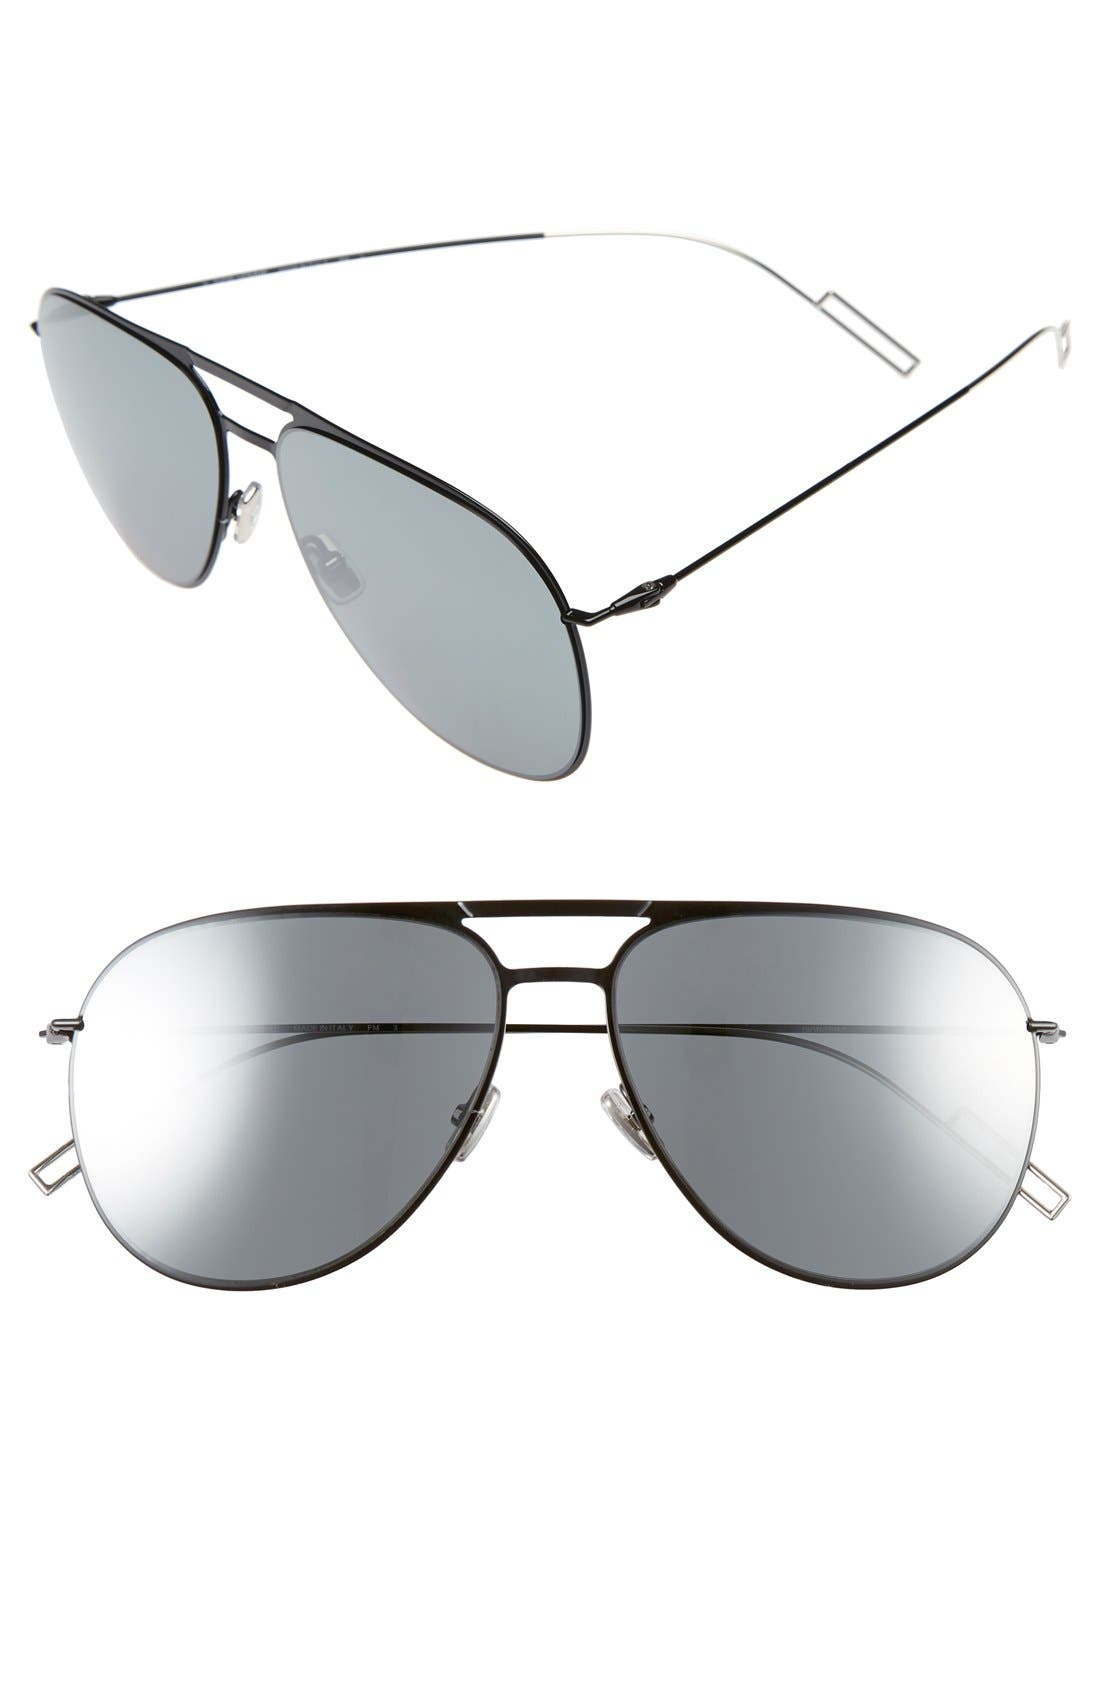 Main Image - Dior Homme 59mm Aviator Sunglasses